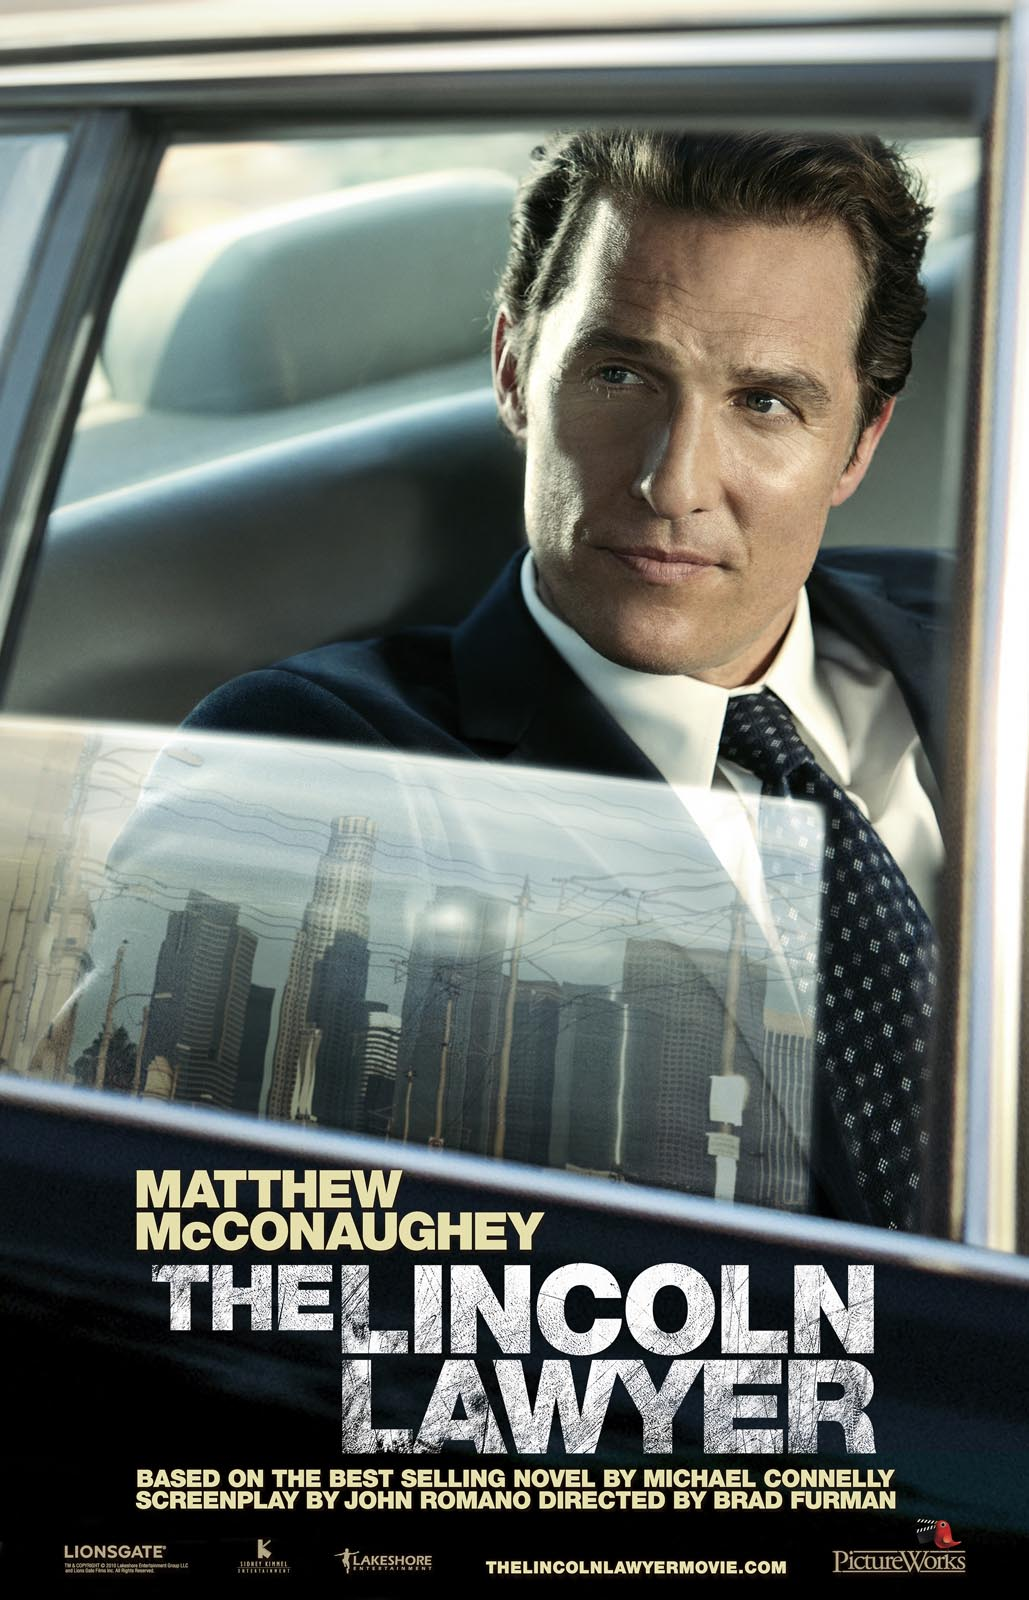 ee3b9344ccfc8 A Constantly Racing Mind...  The Lincoln Lawyer - a Review